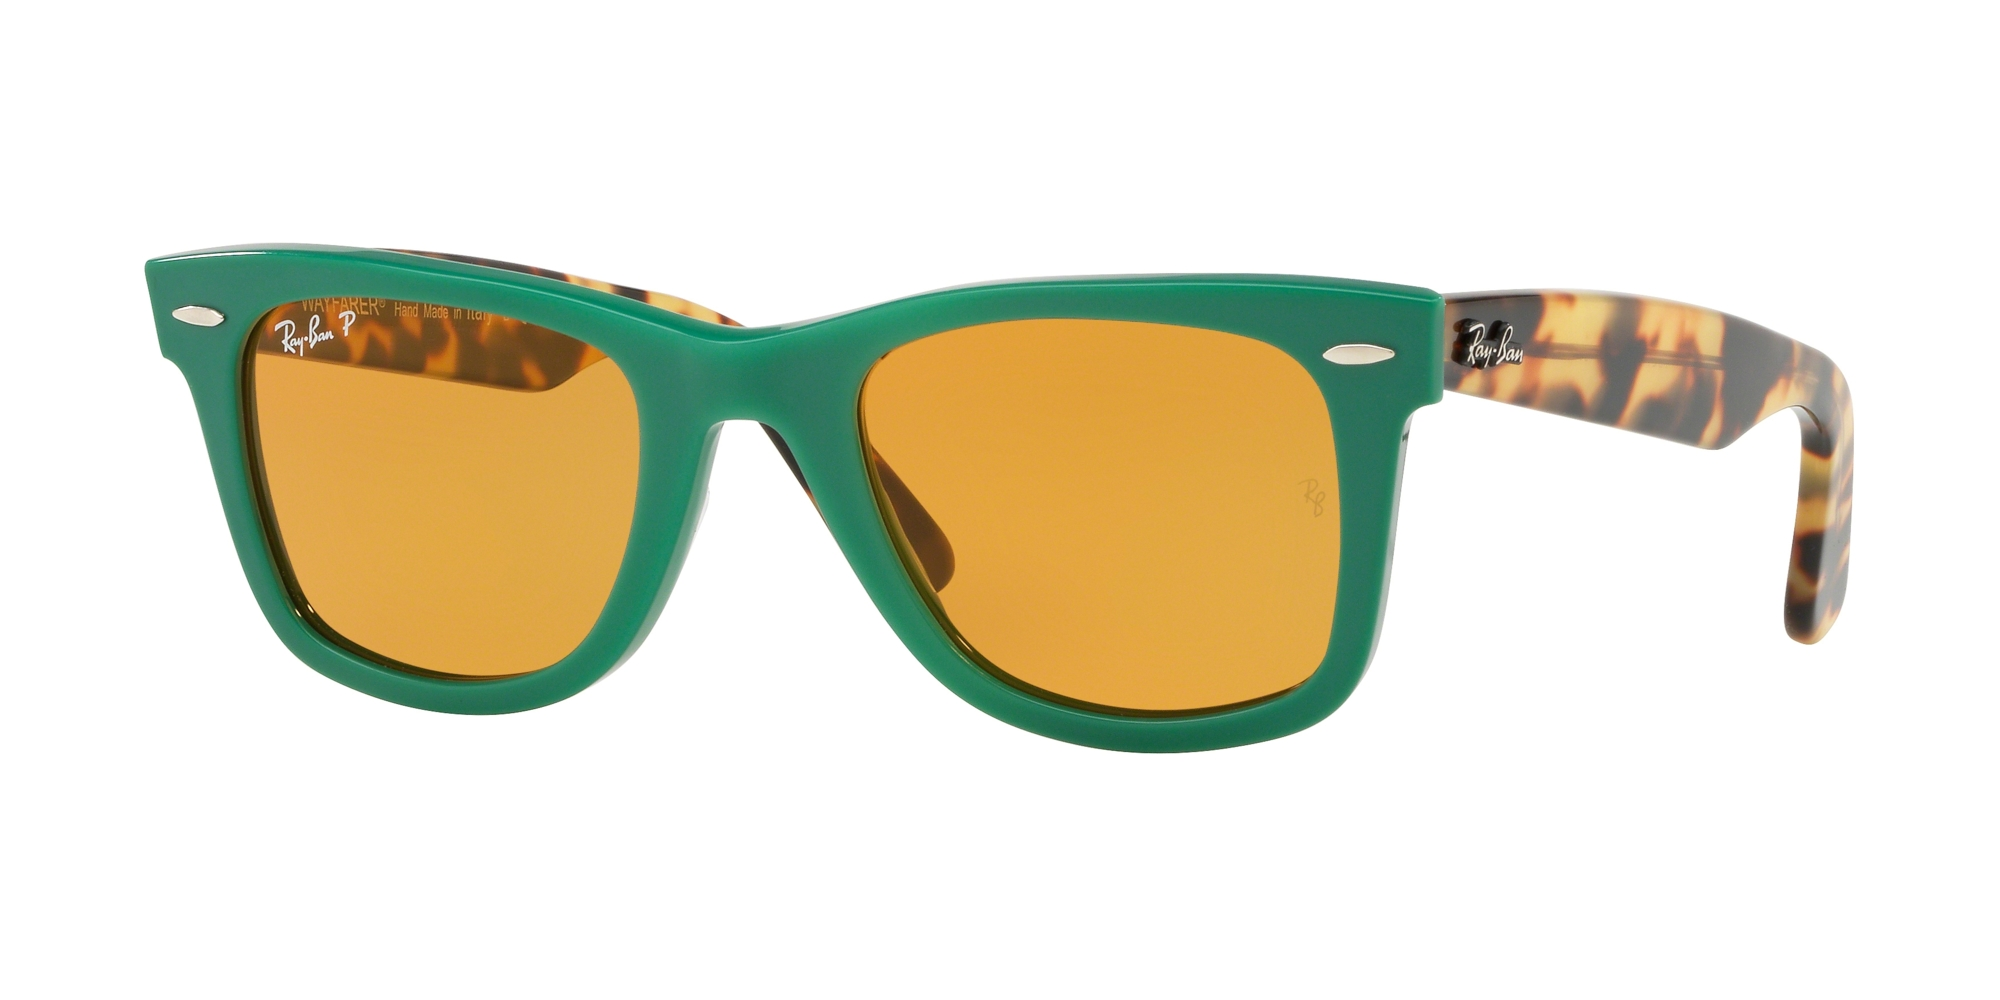 Ray Ban Sonnenbrille 0RB2140501240N9 bei ROTTLER